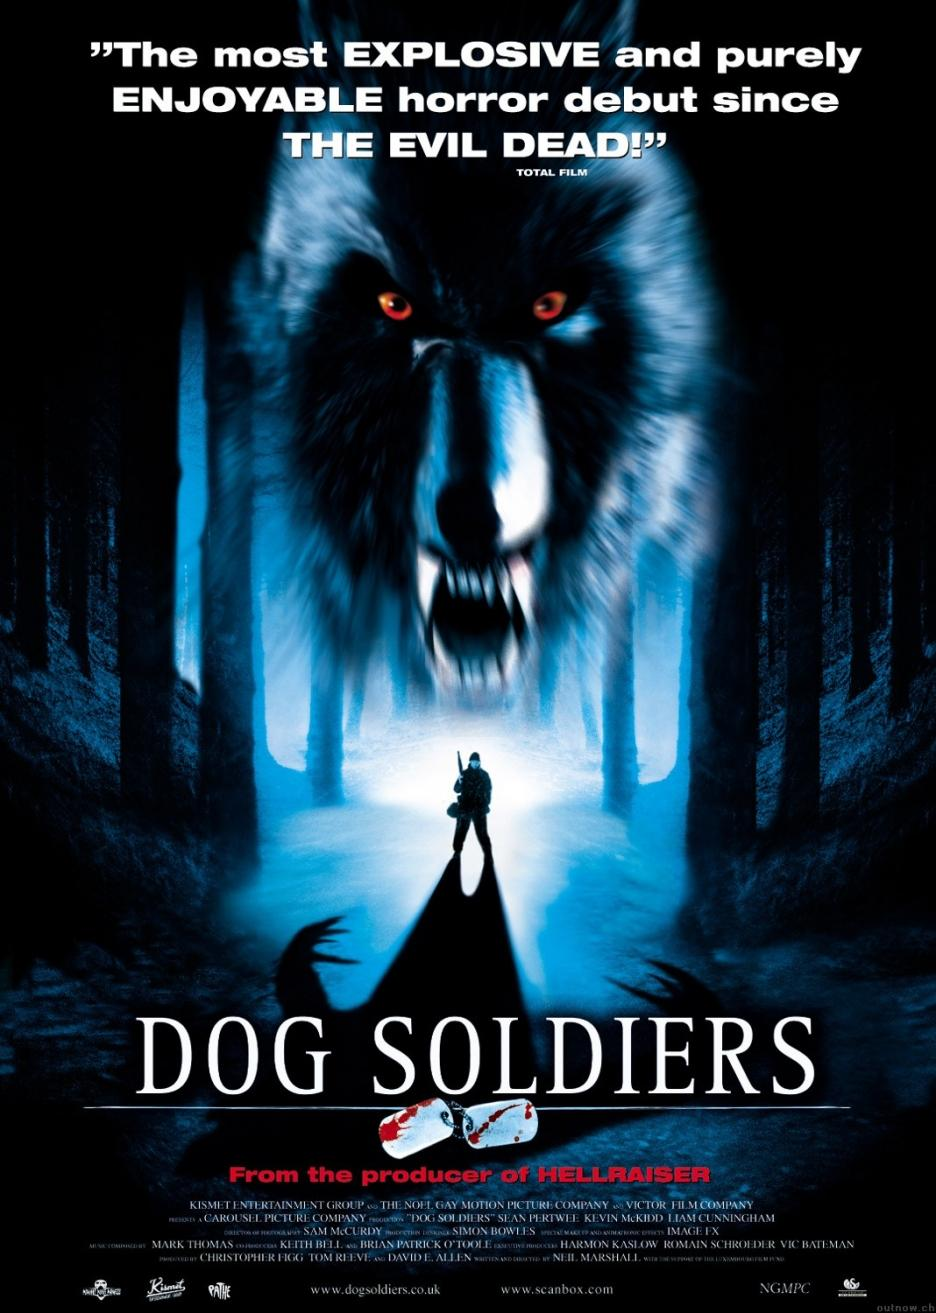 Dog Soldiers (2002) - Directed by: Neil MarshallStarring: Sean Pertwee, Kevin McKidd, Emma Cleasby, Liam CunninghamRated: R for Strong Violence/ Gore and LanguageRunning Time: 1 h 45 mTMM Score: 3.5 stars out of 5STRENGTHS: Writing, Directing, StoryWEAKNESSES: Budgetary Restraints